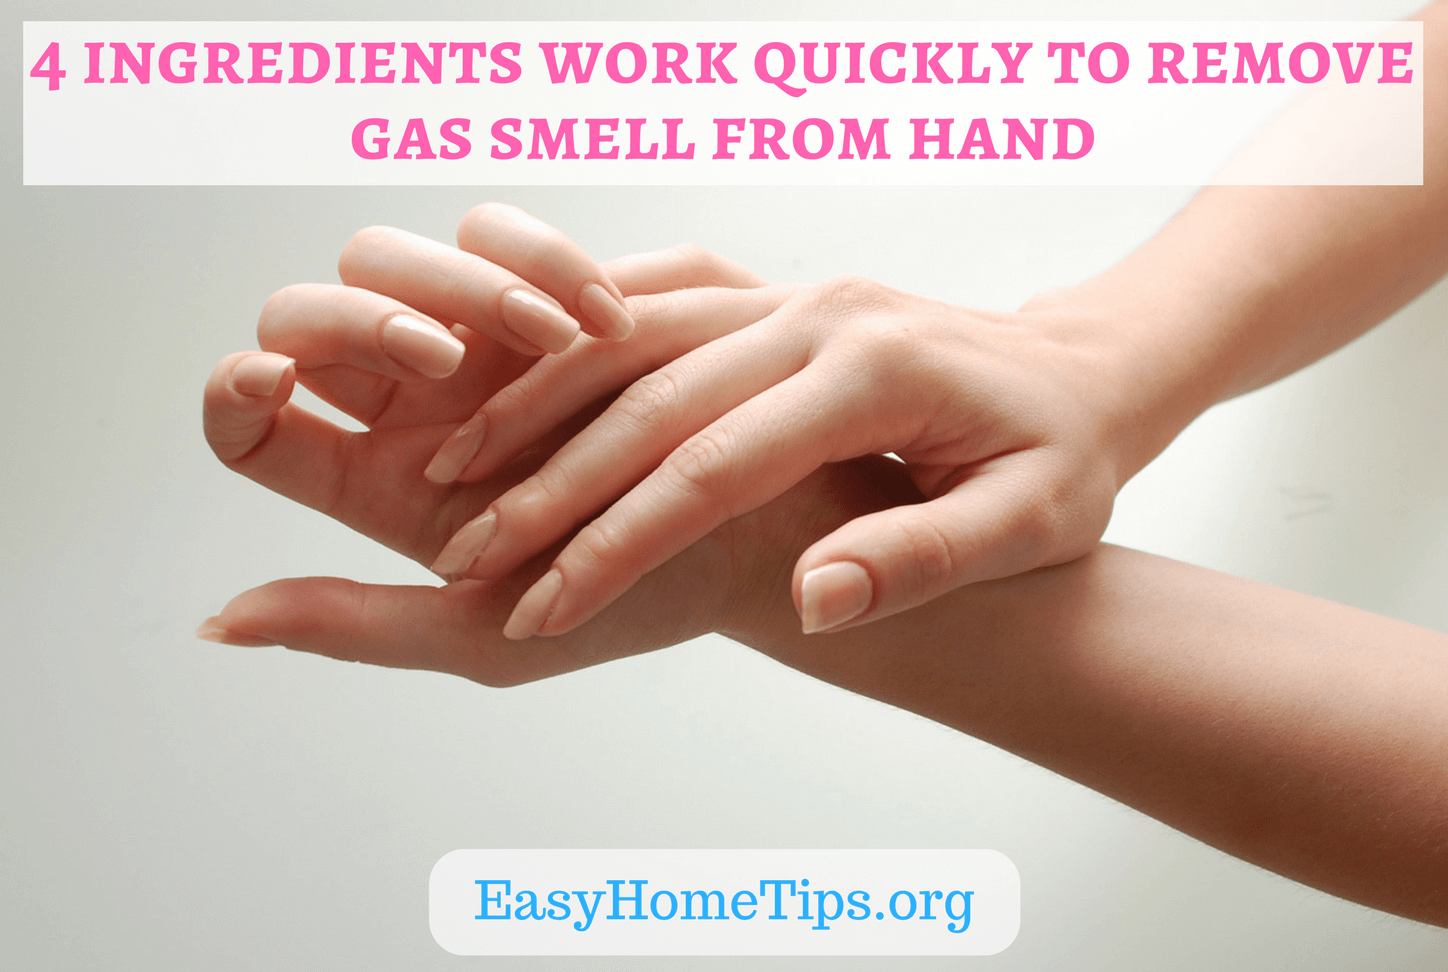 4 ingredients work quickly to remove gas odor or smell from hand